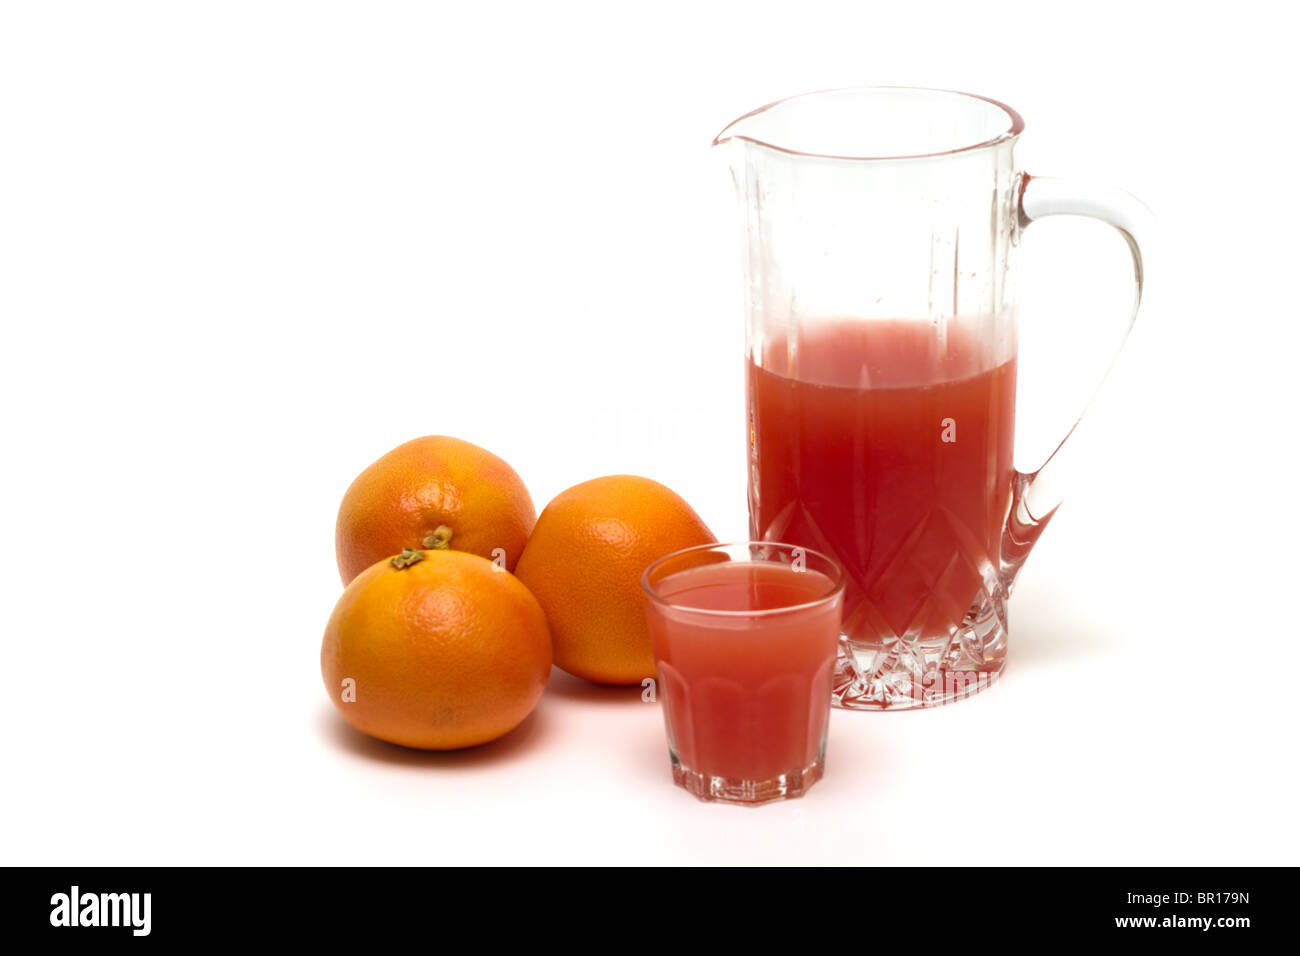 Grapefruits with a pitcher and glass of freshly squeezed grapefruit juice - Stock Image